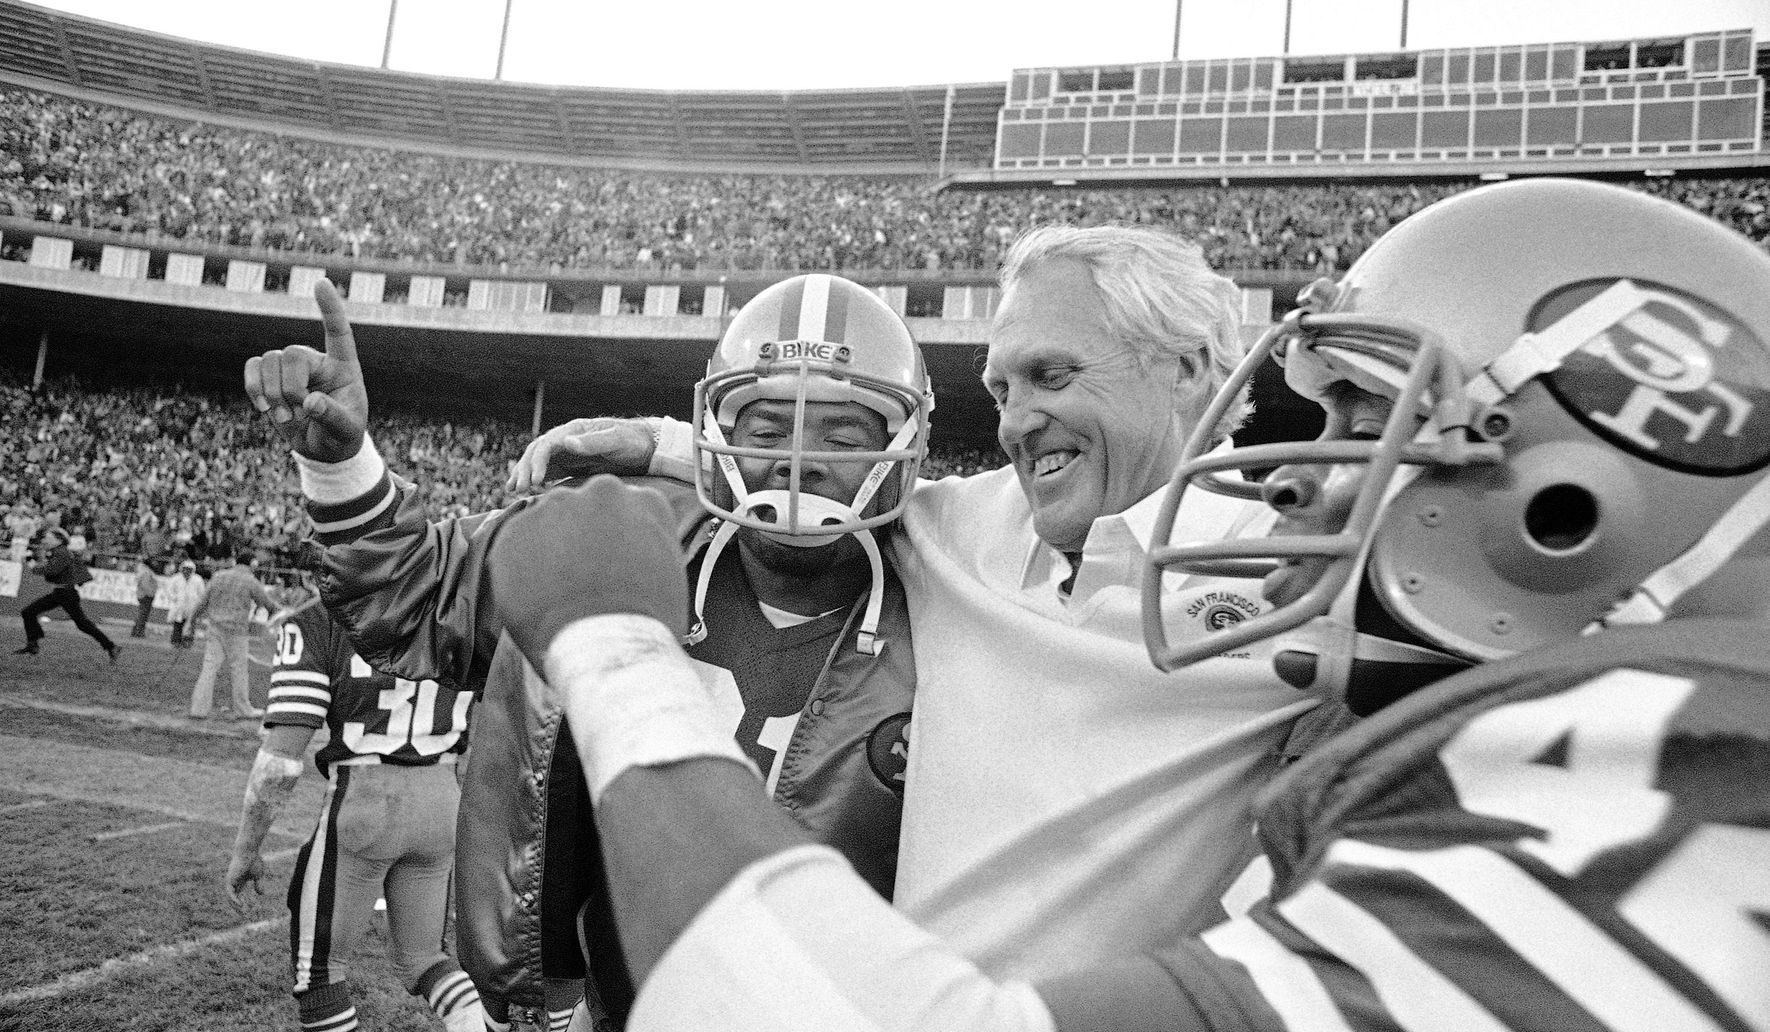 49ers_remembering_1981_76740_c0-118-2997-1865_s1770x1032